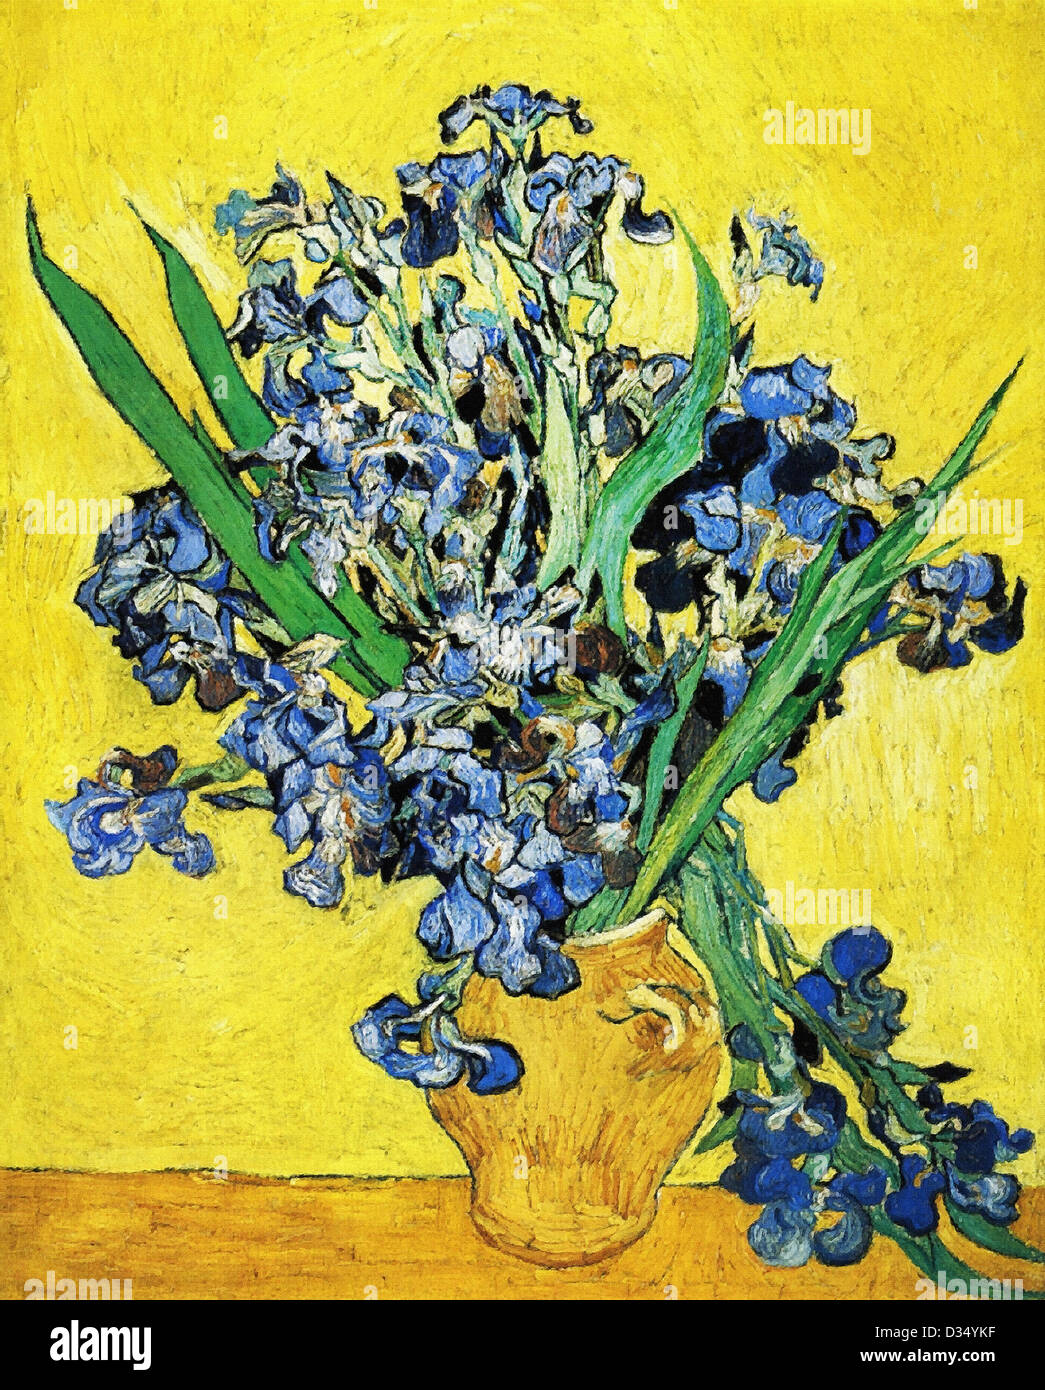 Vincent van gogh still life with irises 1890 post impressionism vincent van gogh still life with irises 1890 post impressionism oil on canvas van gogh museum amsterdam netherlands reviewsmspy